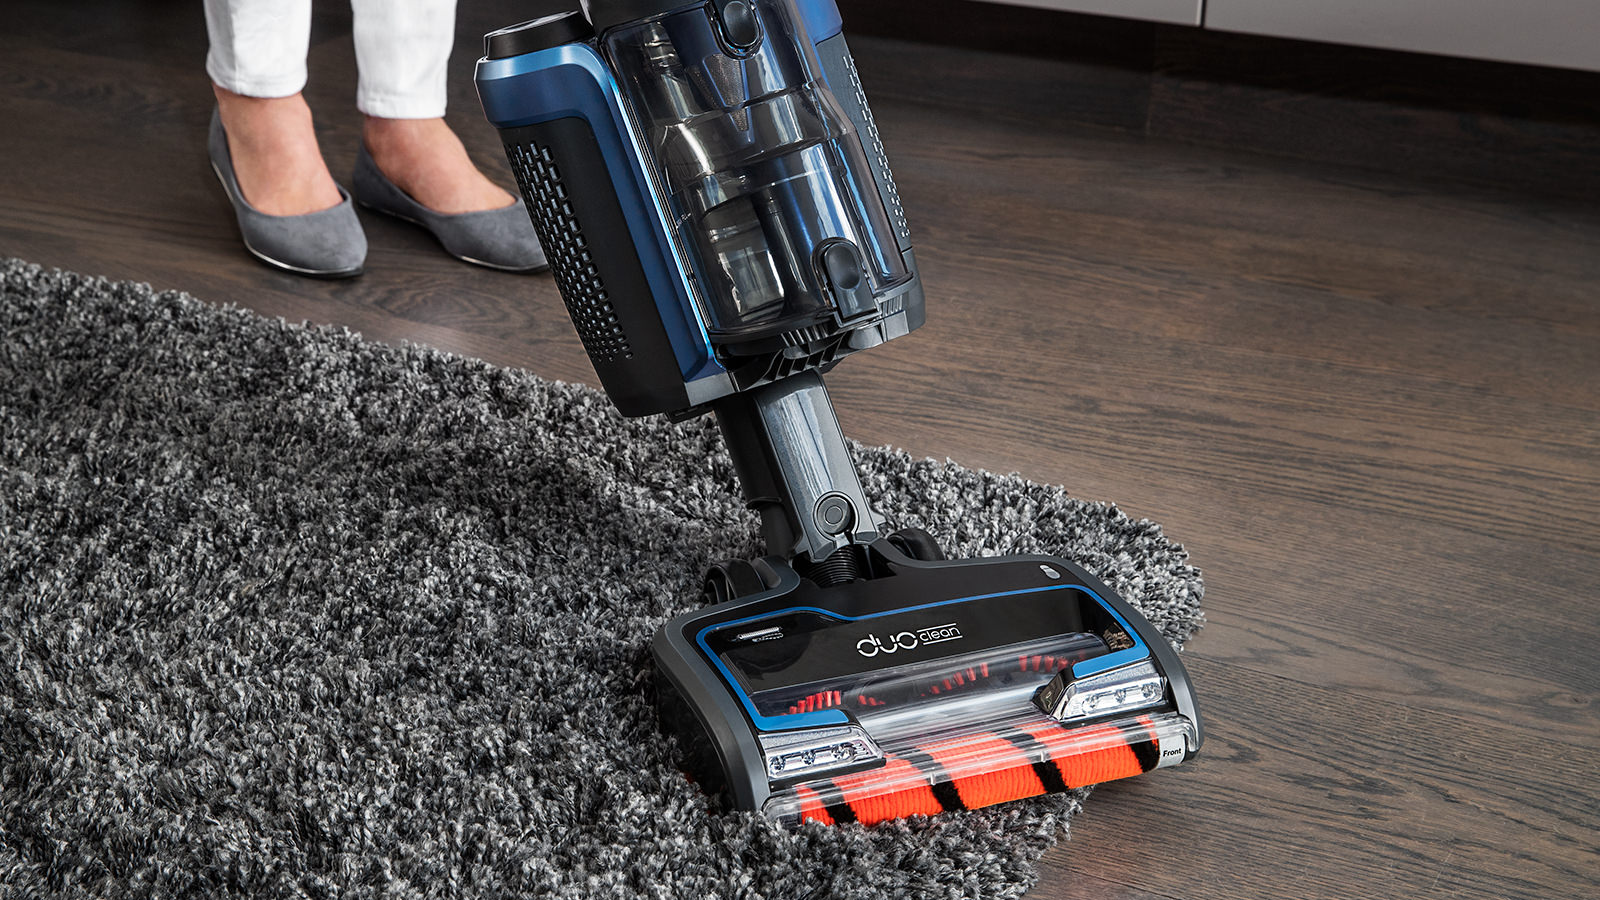 Shark Duo Clean Cordless Upright Vacuum Cleaner 2019 Review